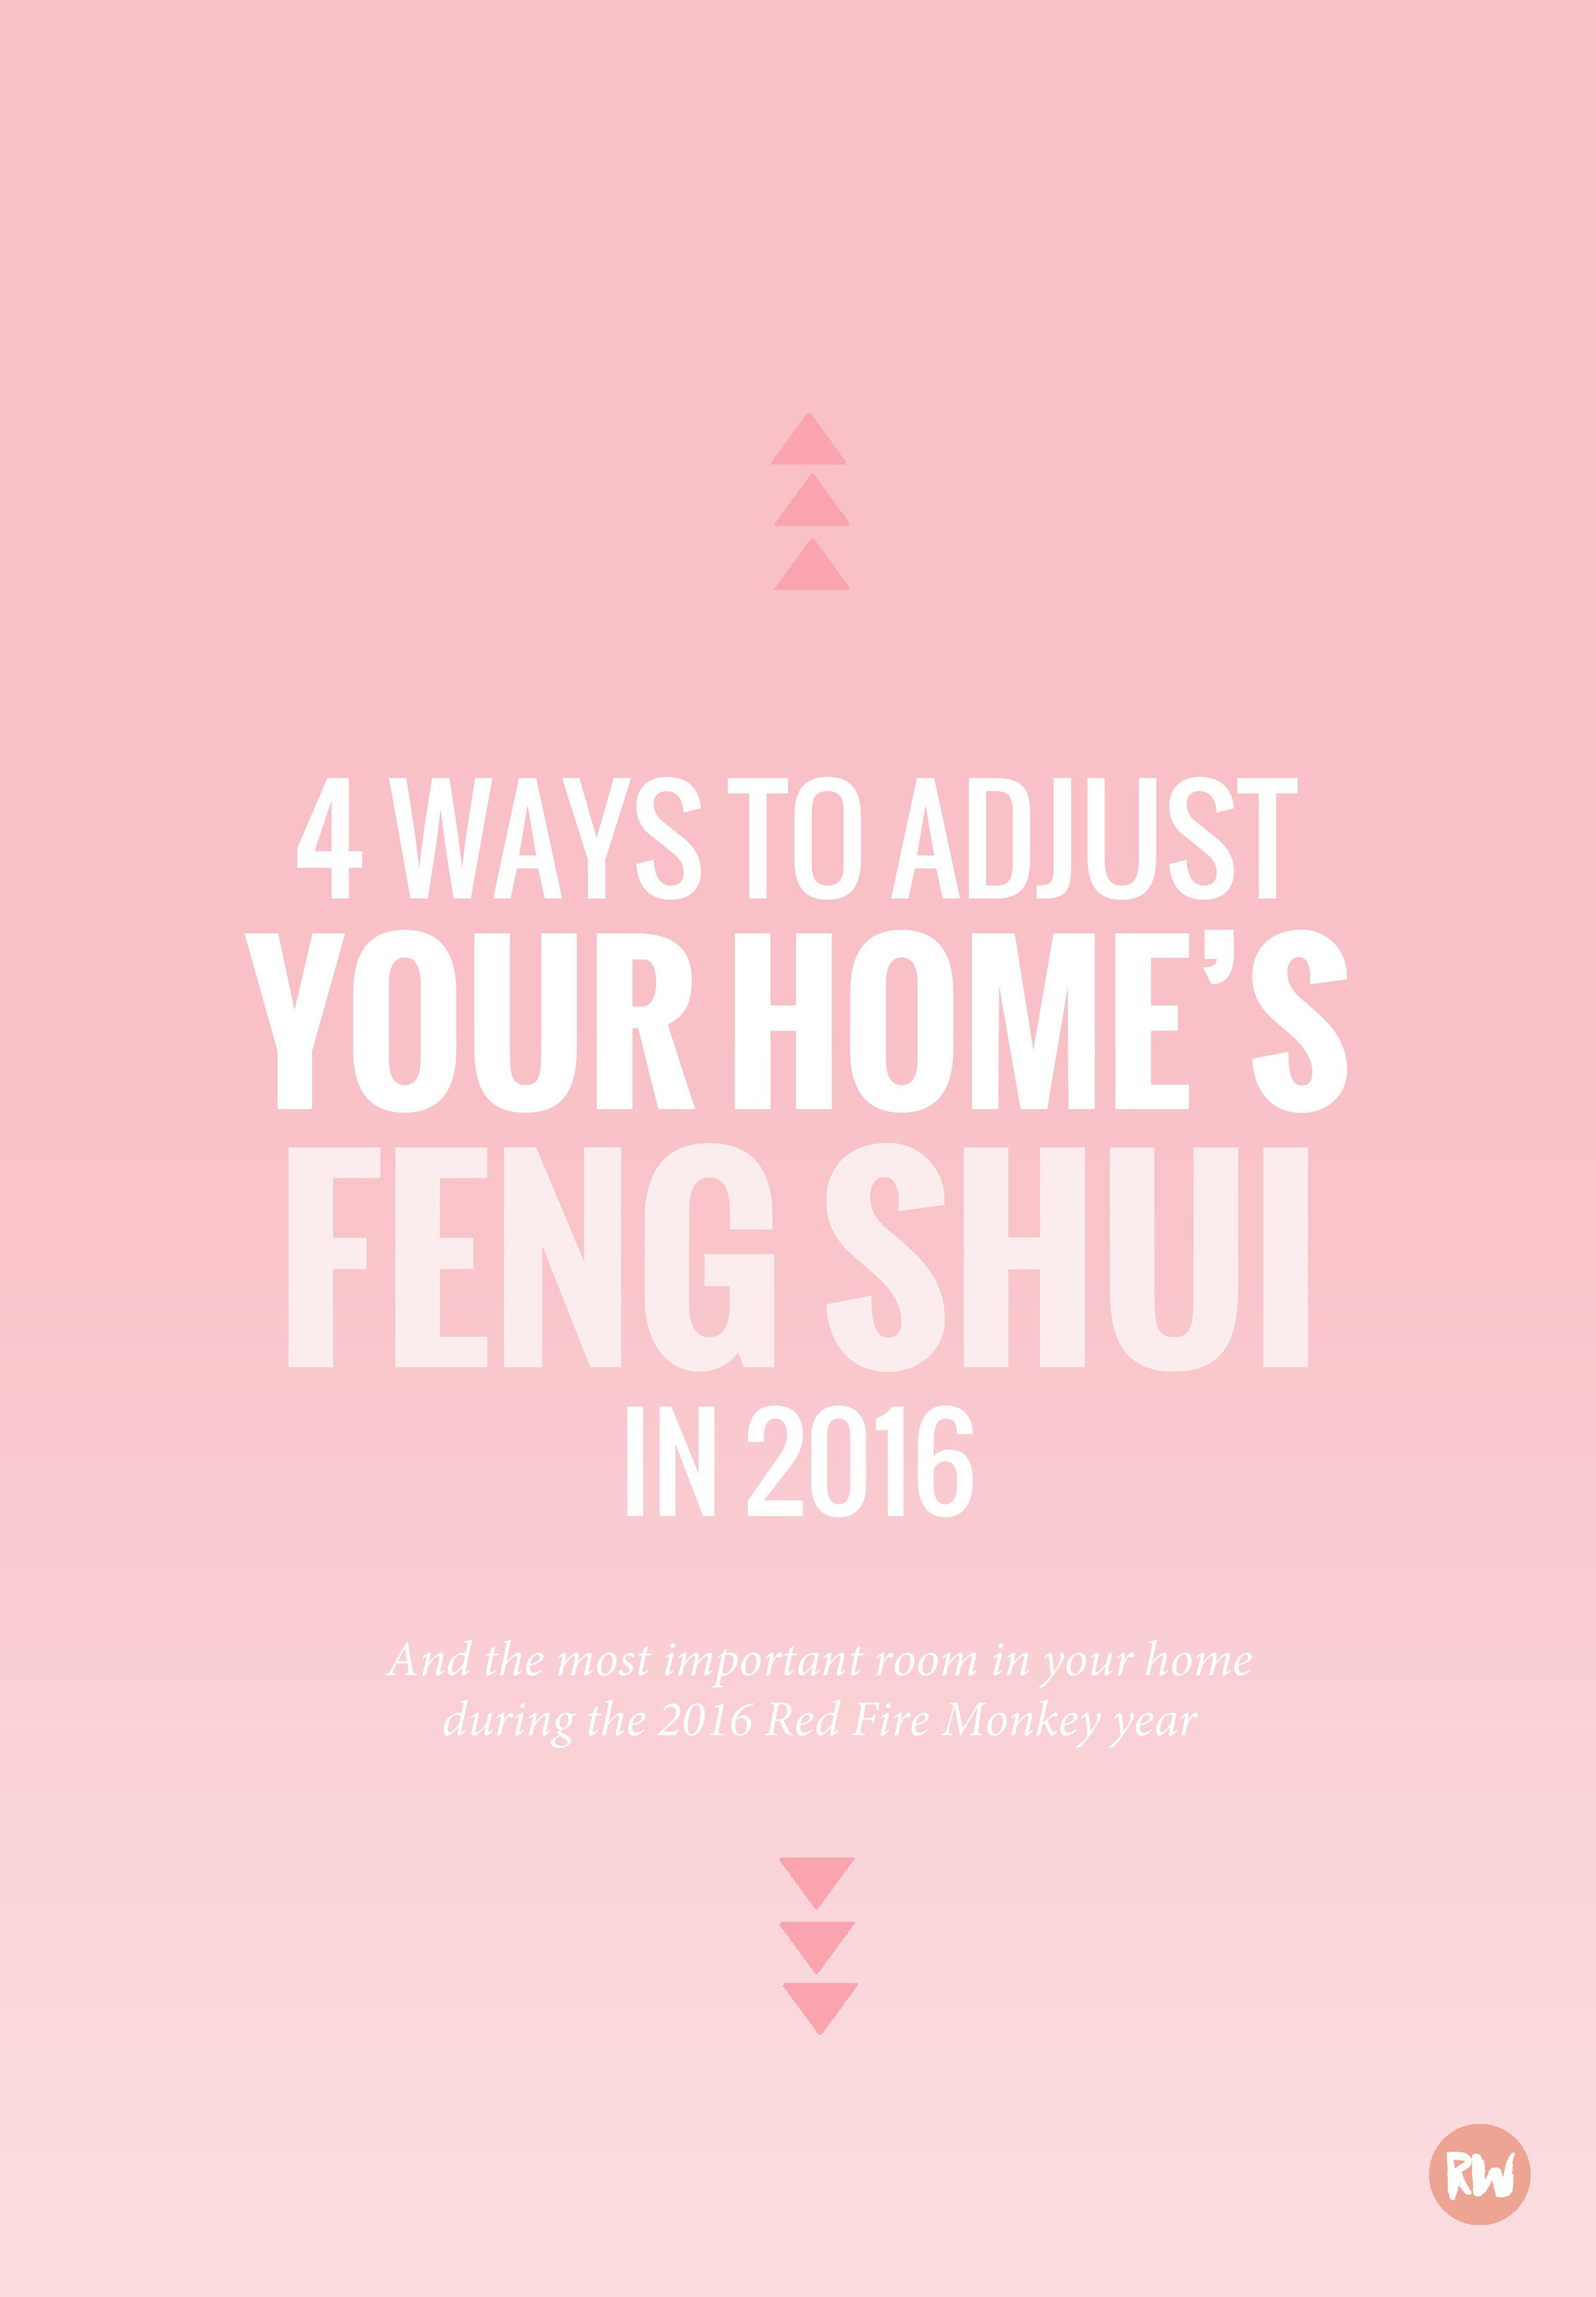 Make sure your home is prepared for the feng shui changes coming with the Red Fire Monkey year for 2016! 4 ways to adjust your home's feng shui | Rogue Wood Supply